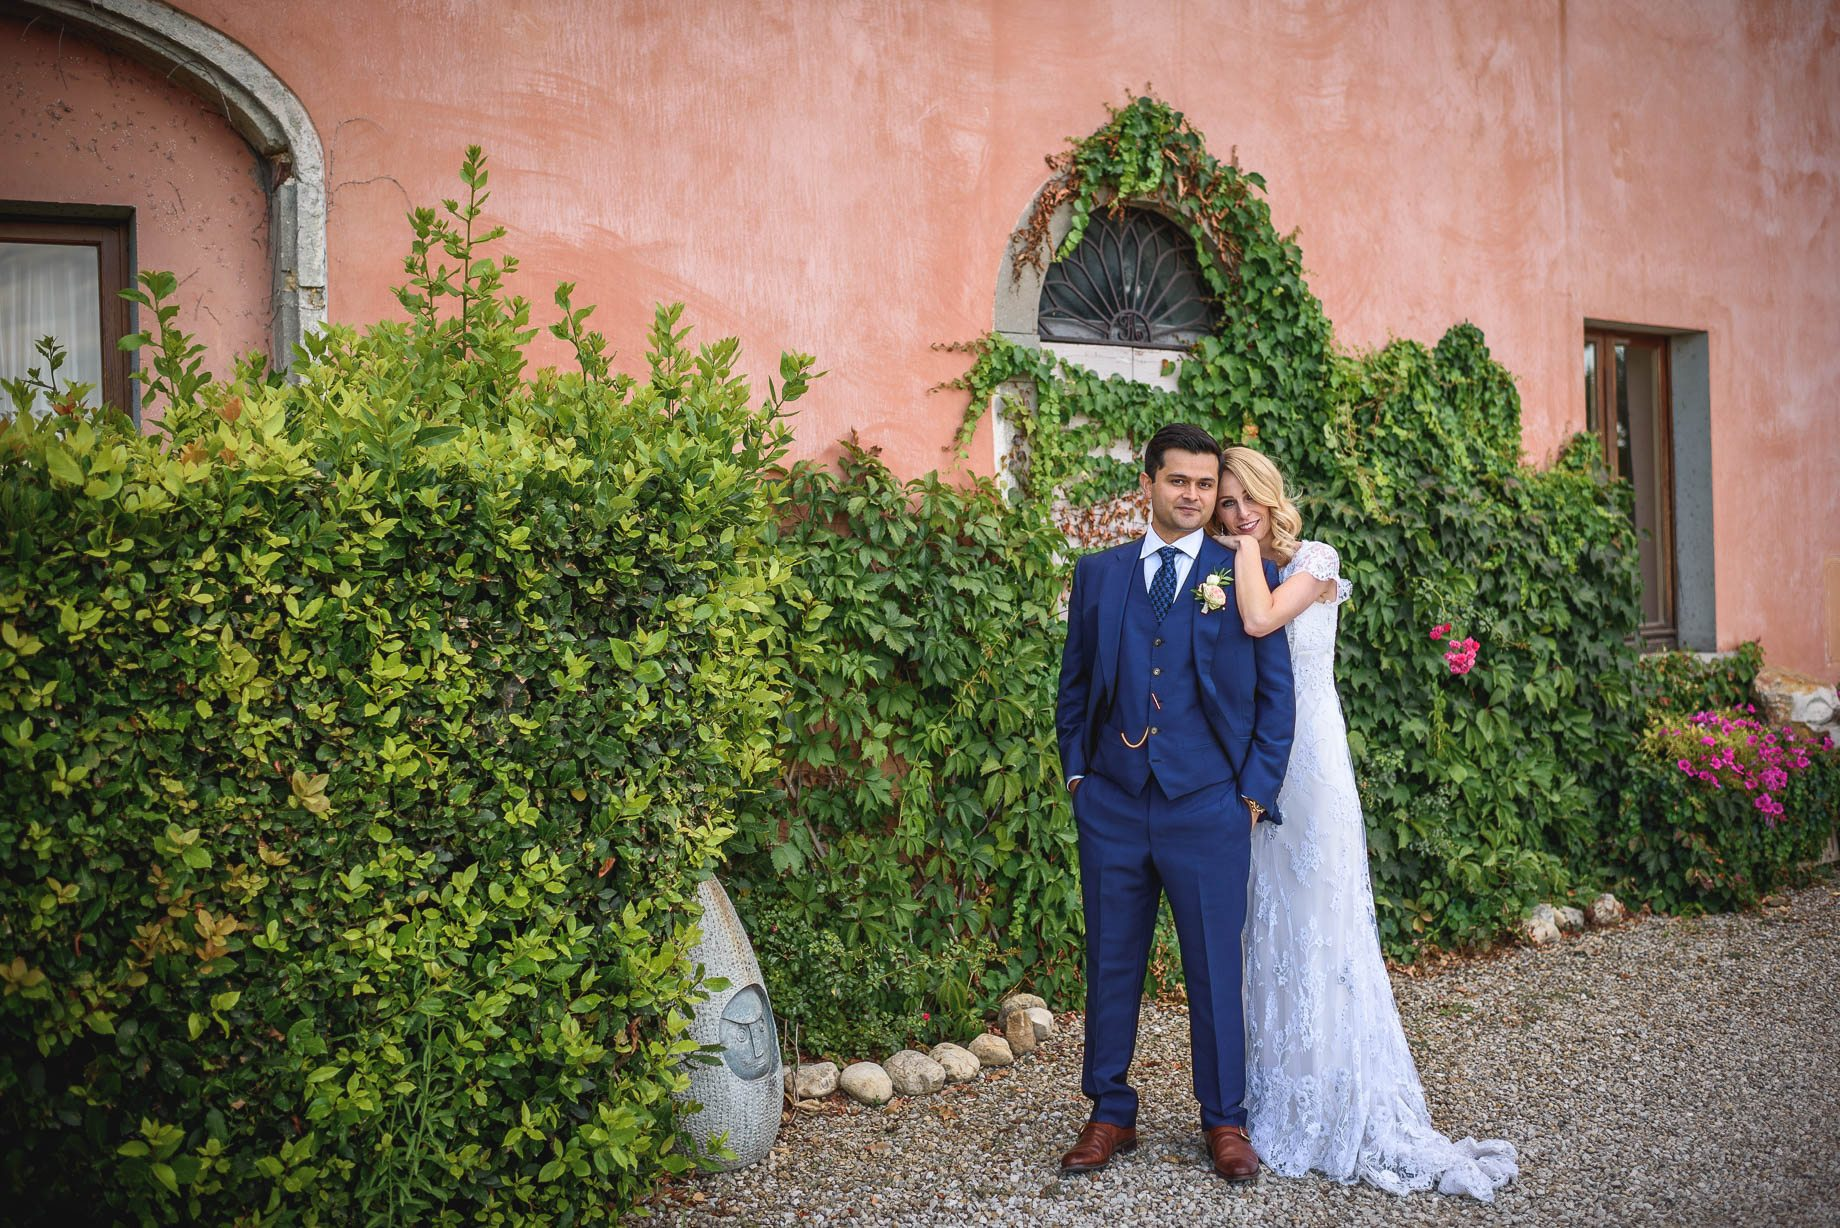 Tuscany wedding photography - Roisin and Moubin - Guy Collier Photography (148 of 251)